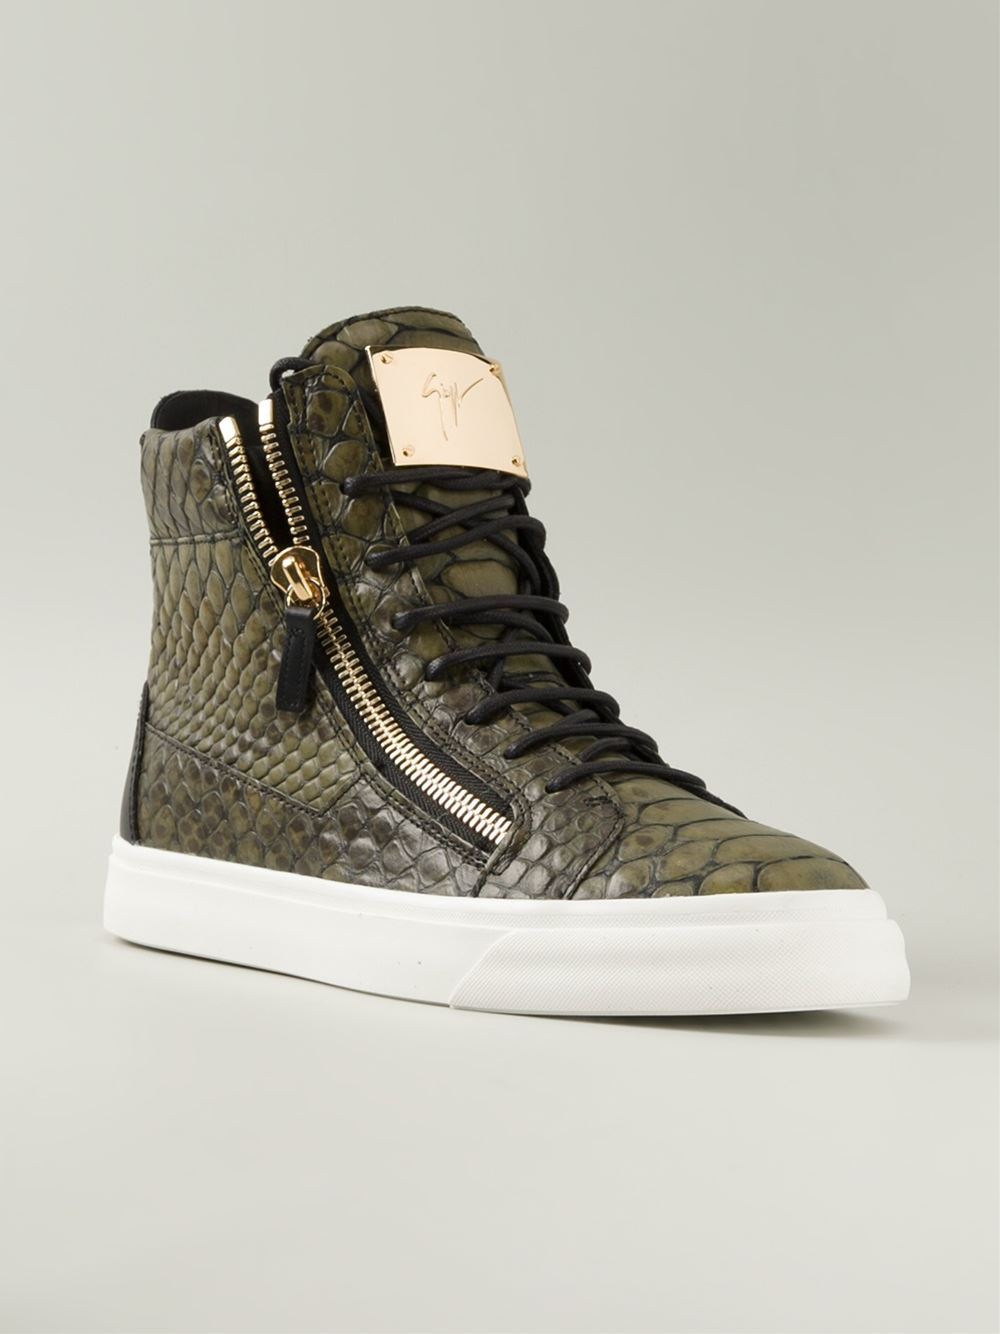 739abf274392 Lyst - Giuseppe Zanotti Croc-Embossed Leather High-Top Sneakers in ...